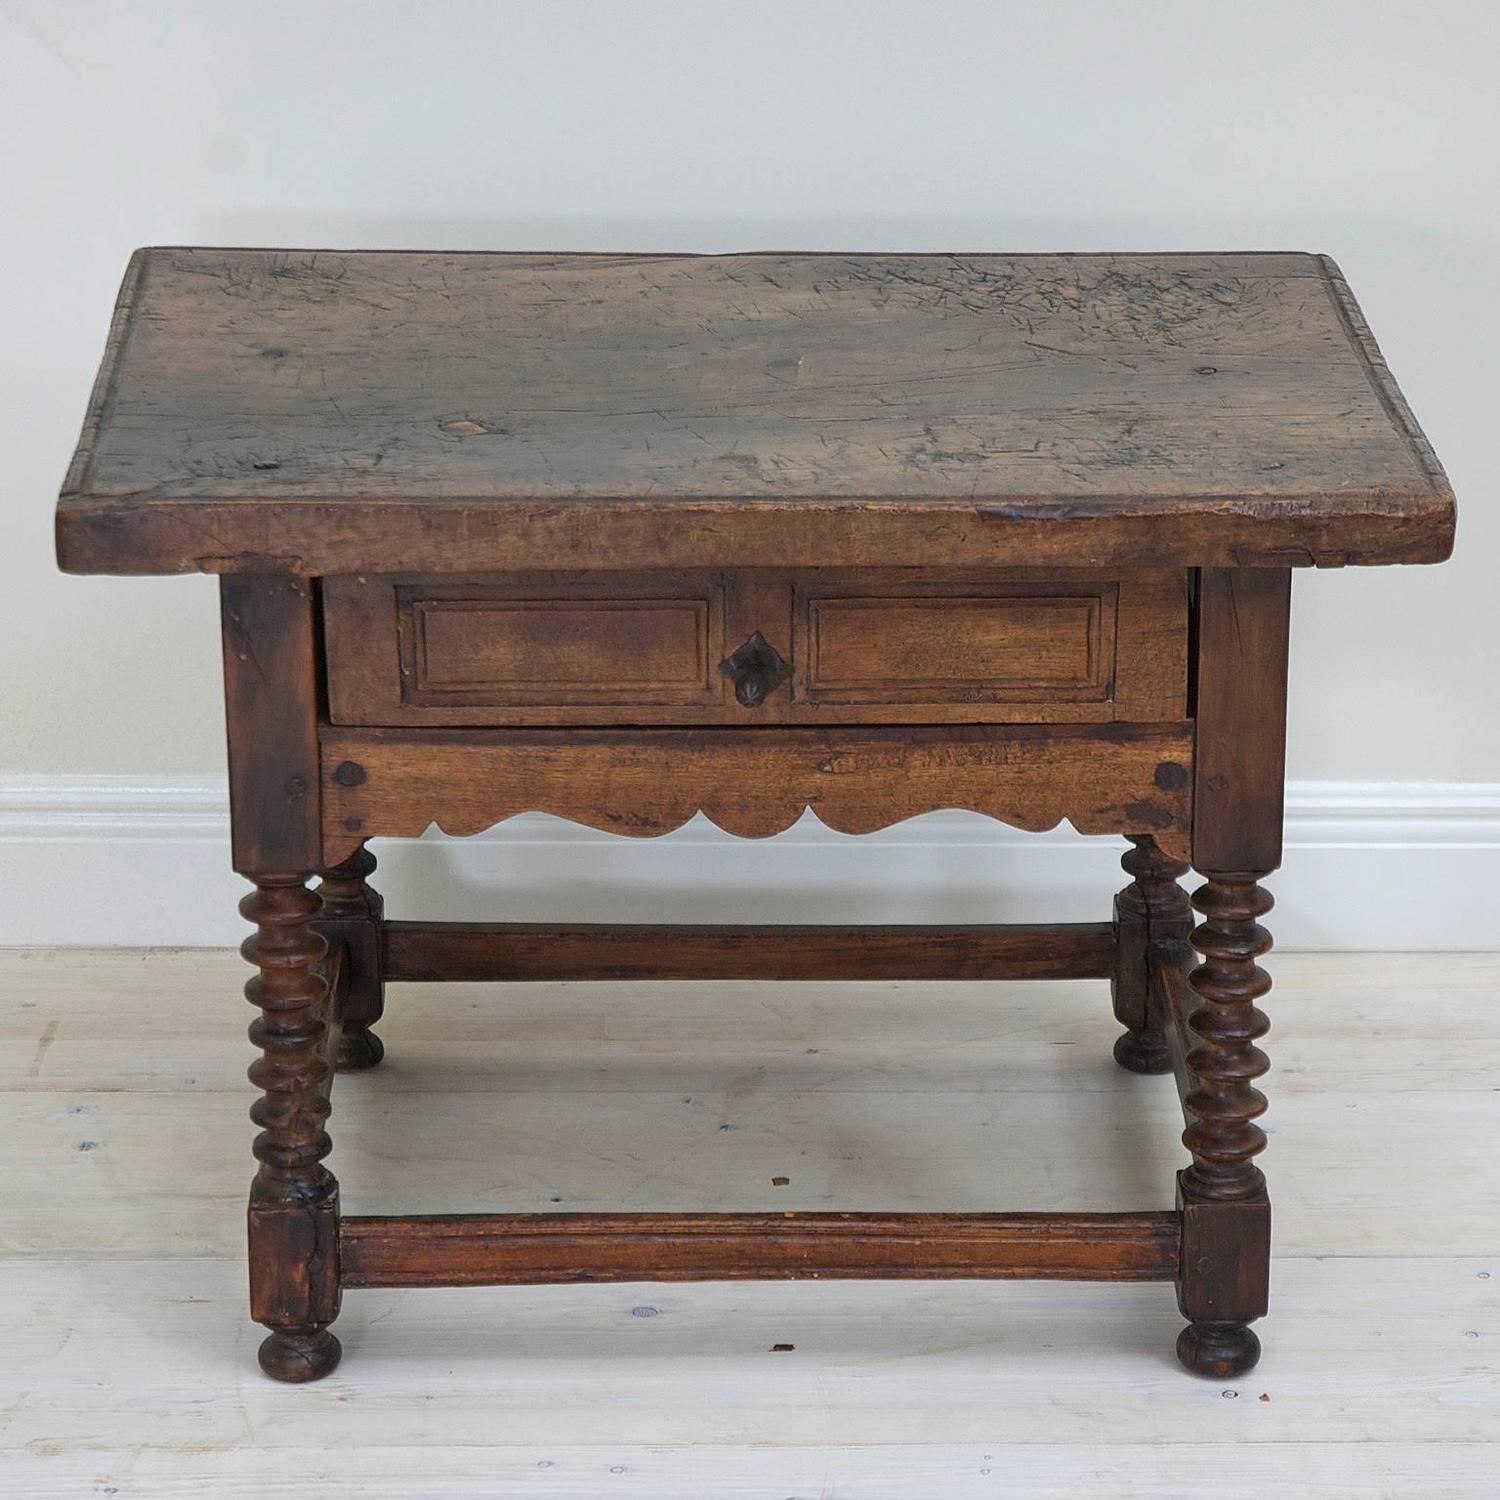 18th Century Rustic Spanish Shoemaker's Table in Walnut - Antique Rustic Spanish Shoemaker's Table In Walnut - Bonnin Ashley